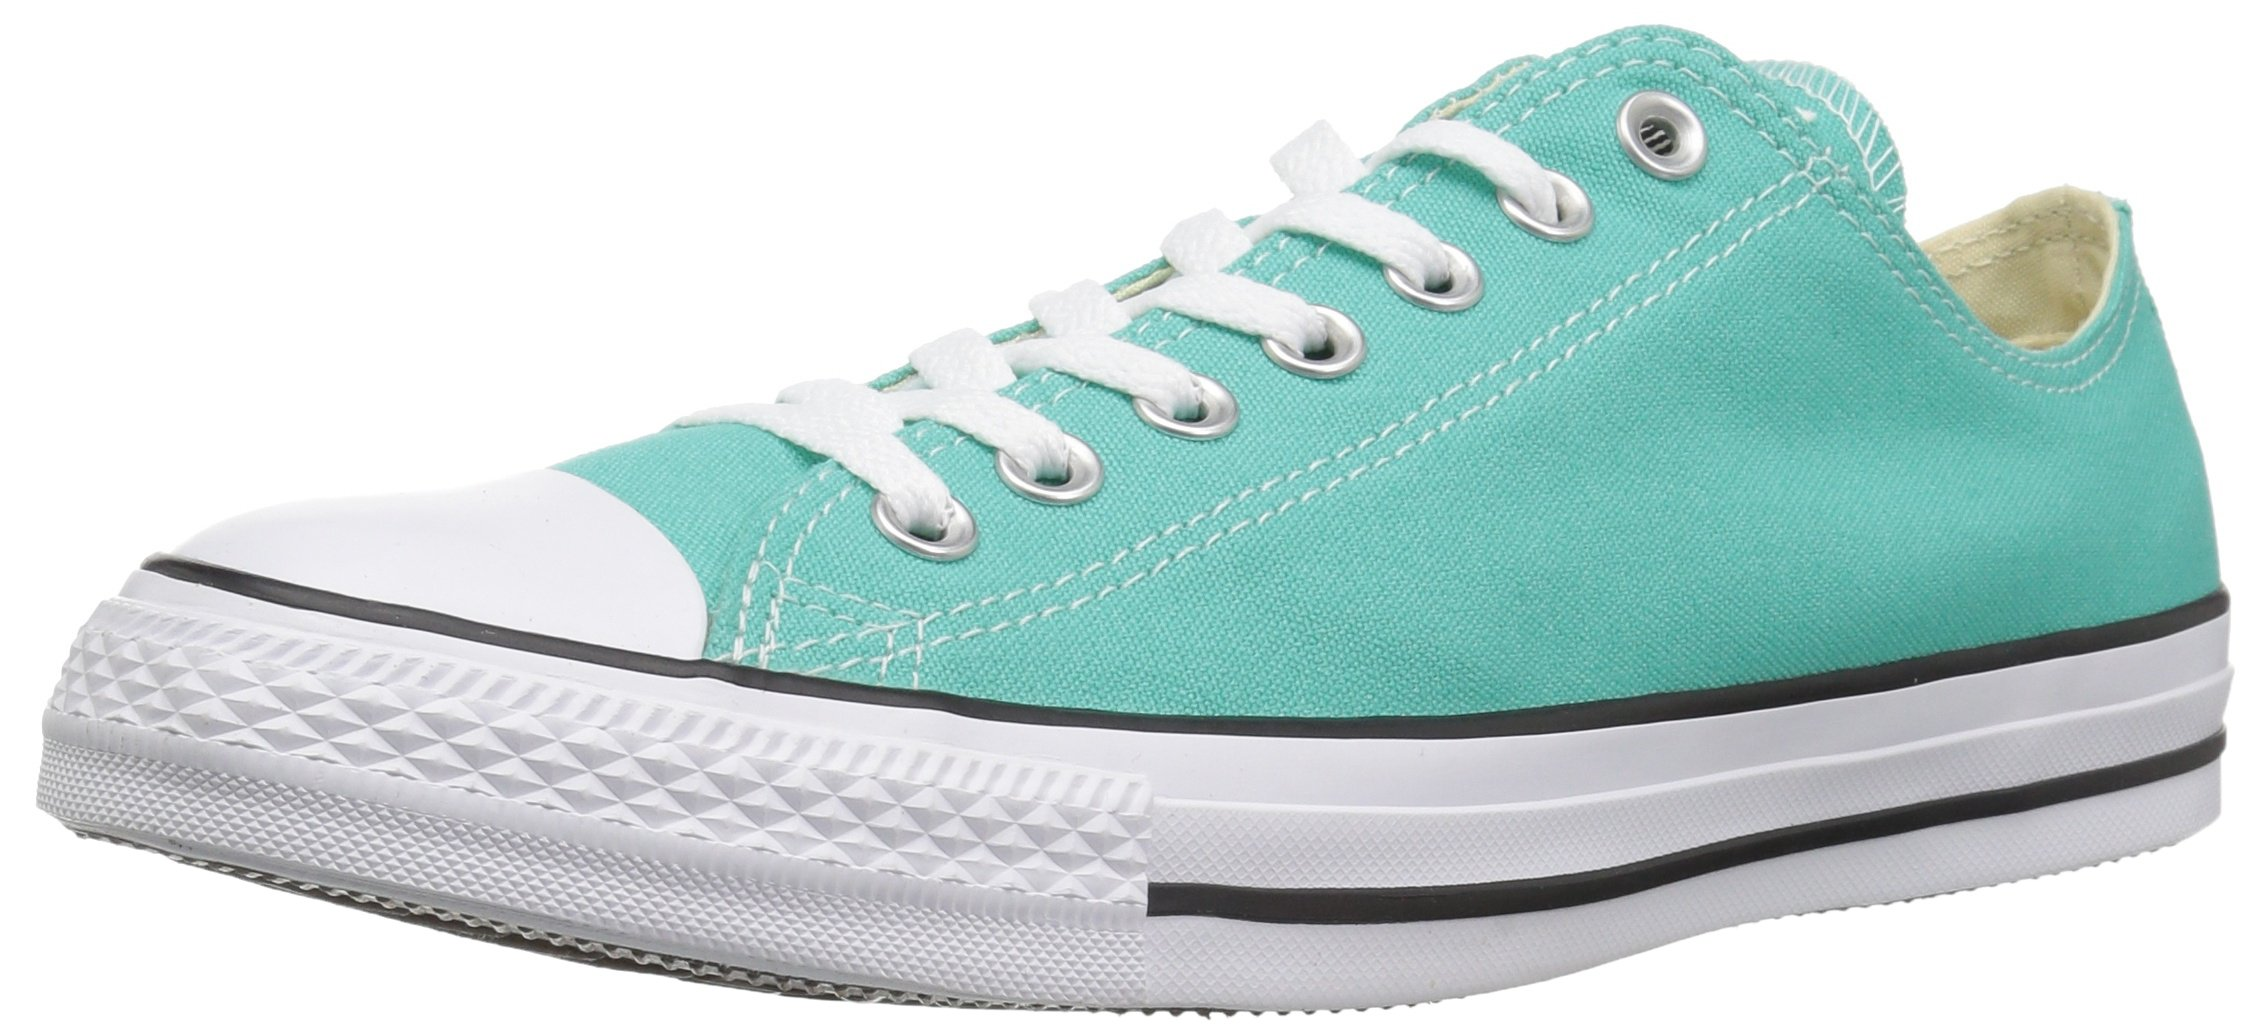 Converse Chuck Taylor All Star 2018 Seasonal Low Top Sneaker, Pure Teal, 8 M US